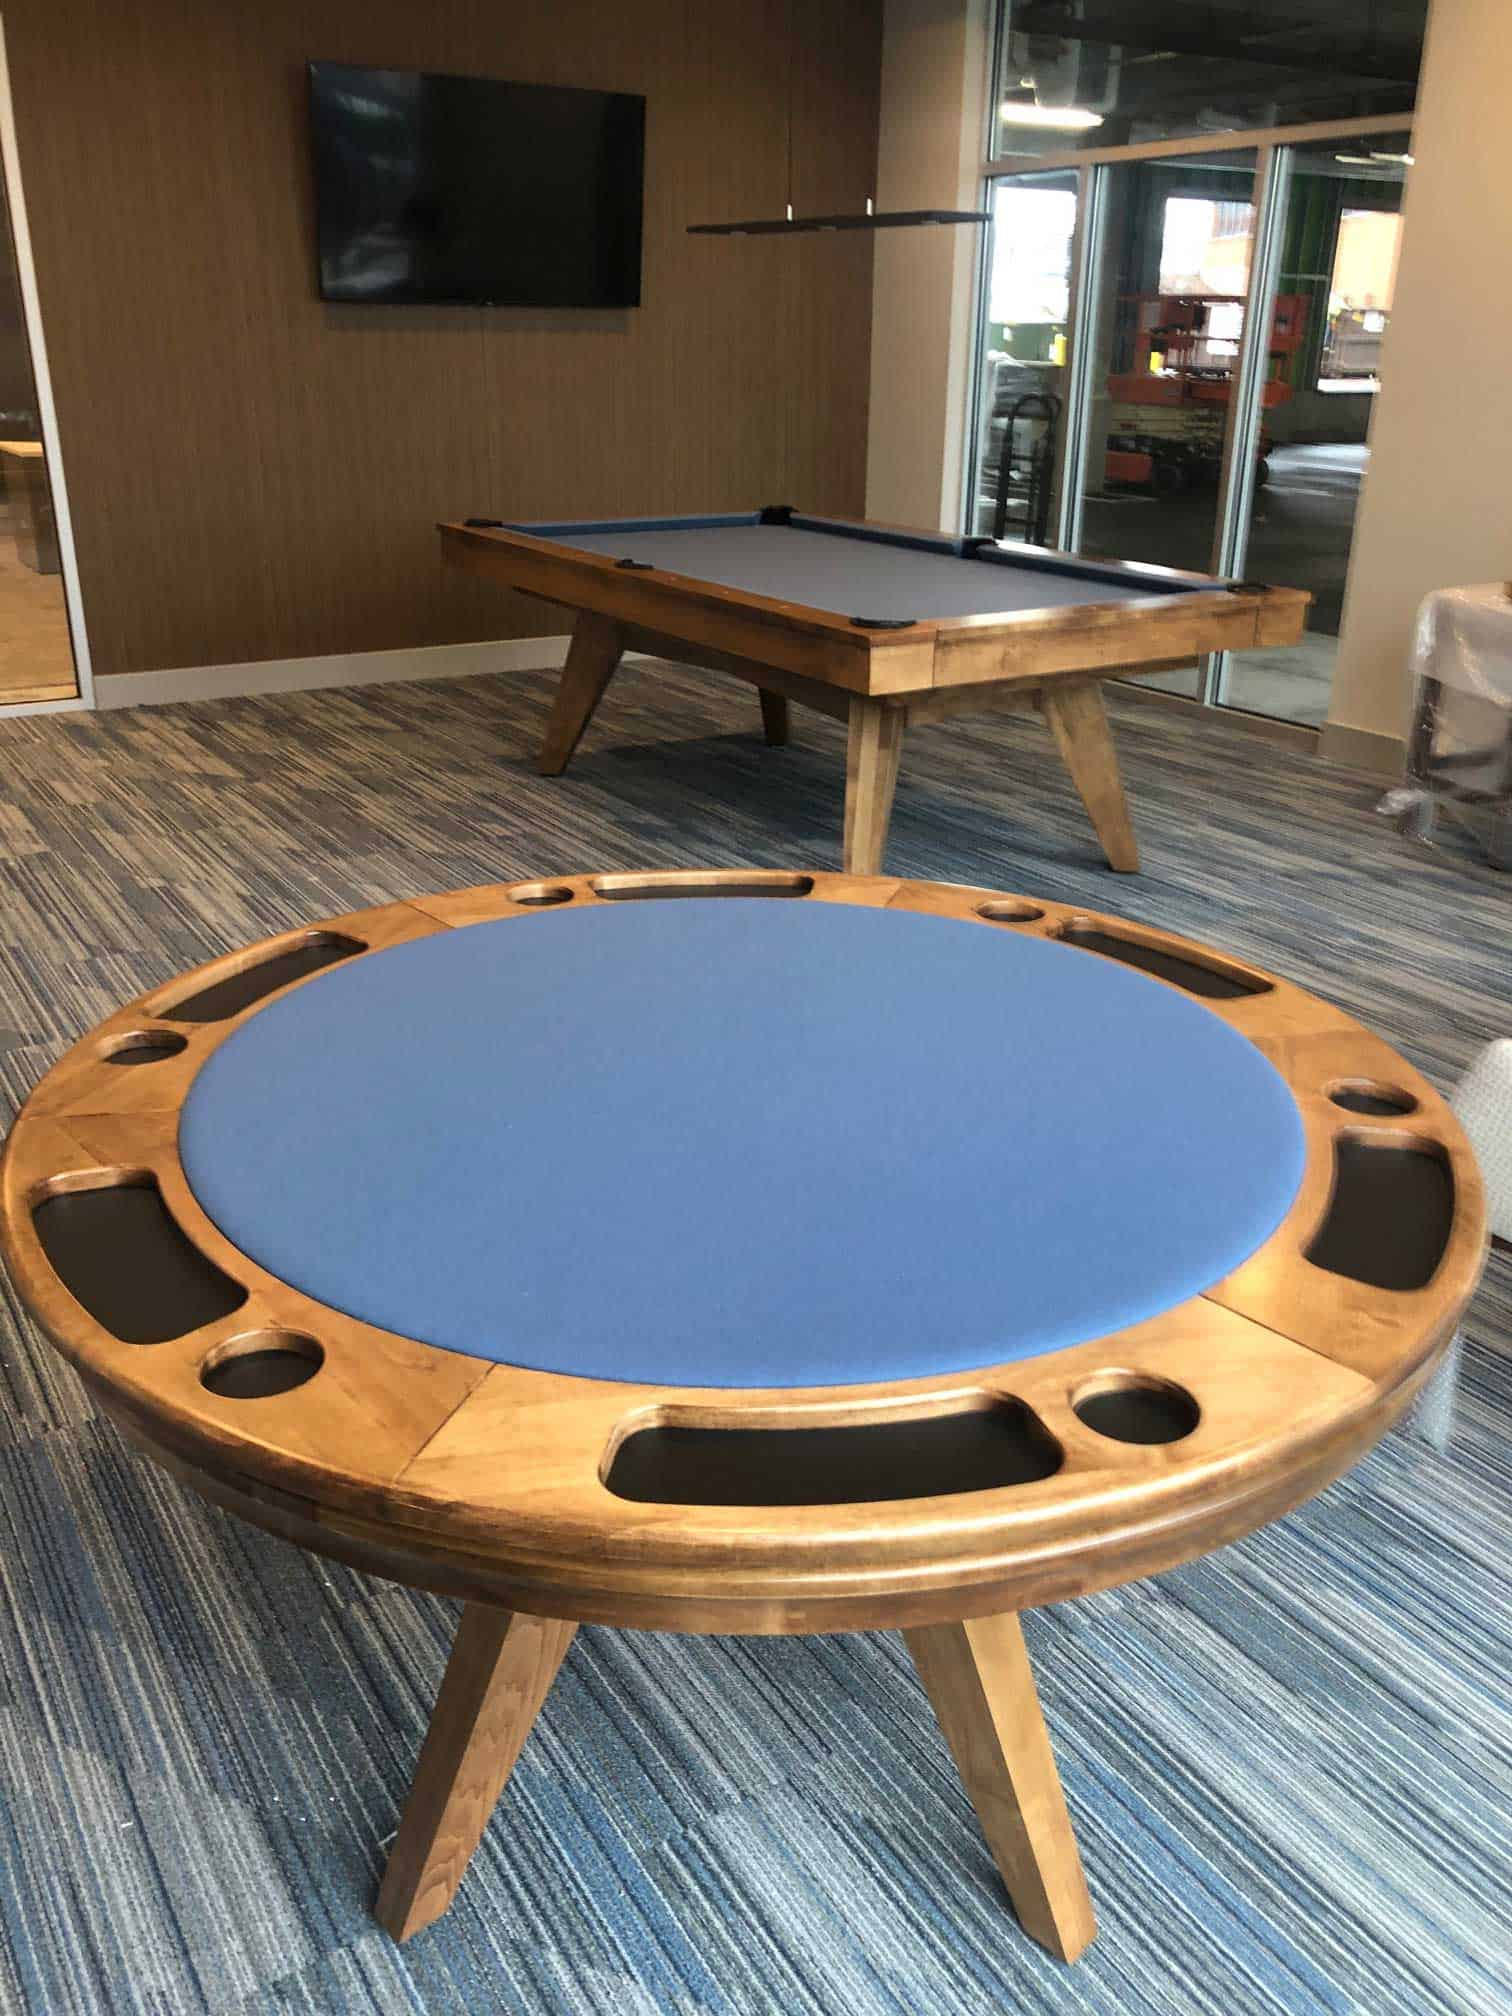 blue felt poker table and a pool table in fairfield ct